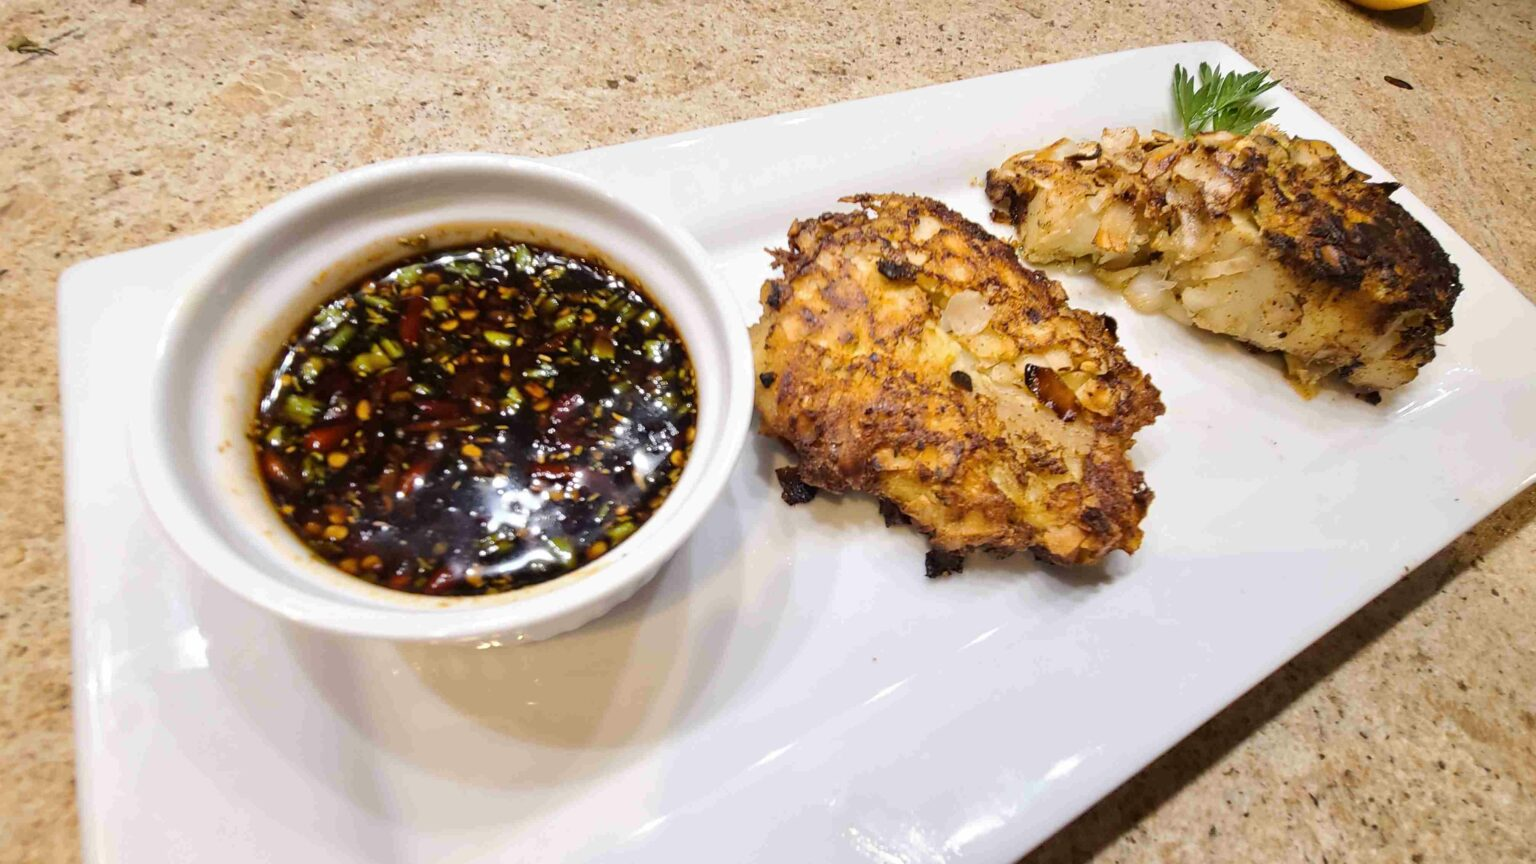 Coconut Crusted Cod with sauce ready to eat